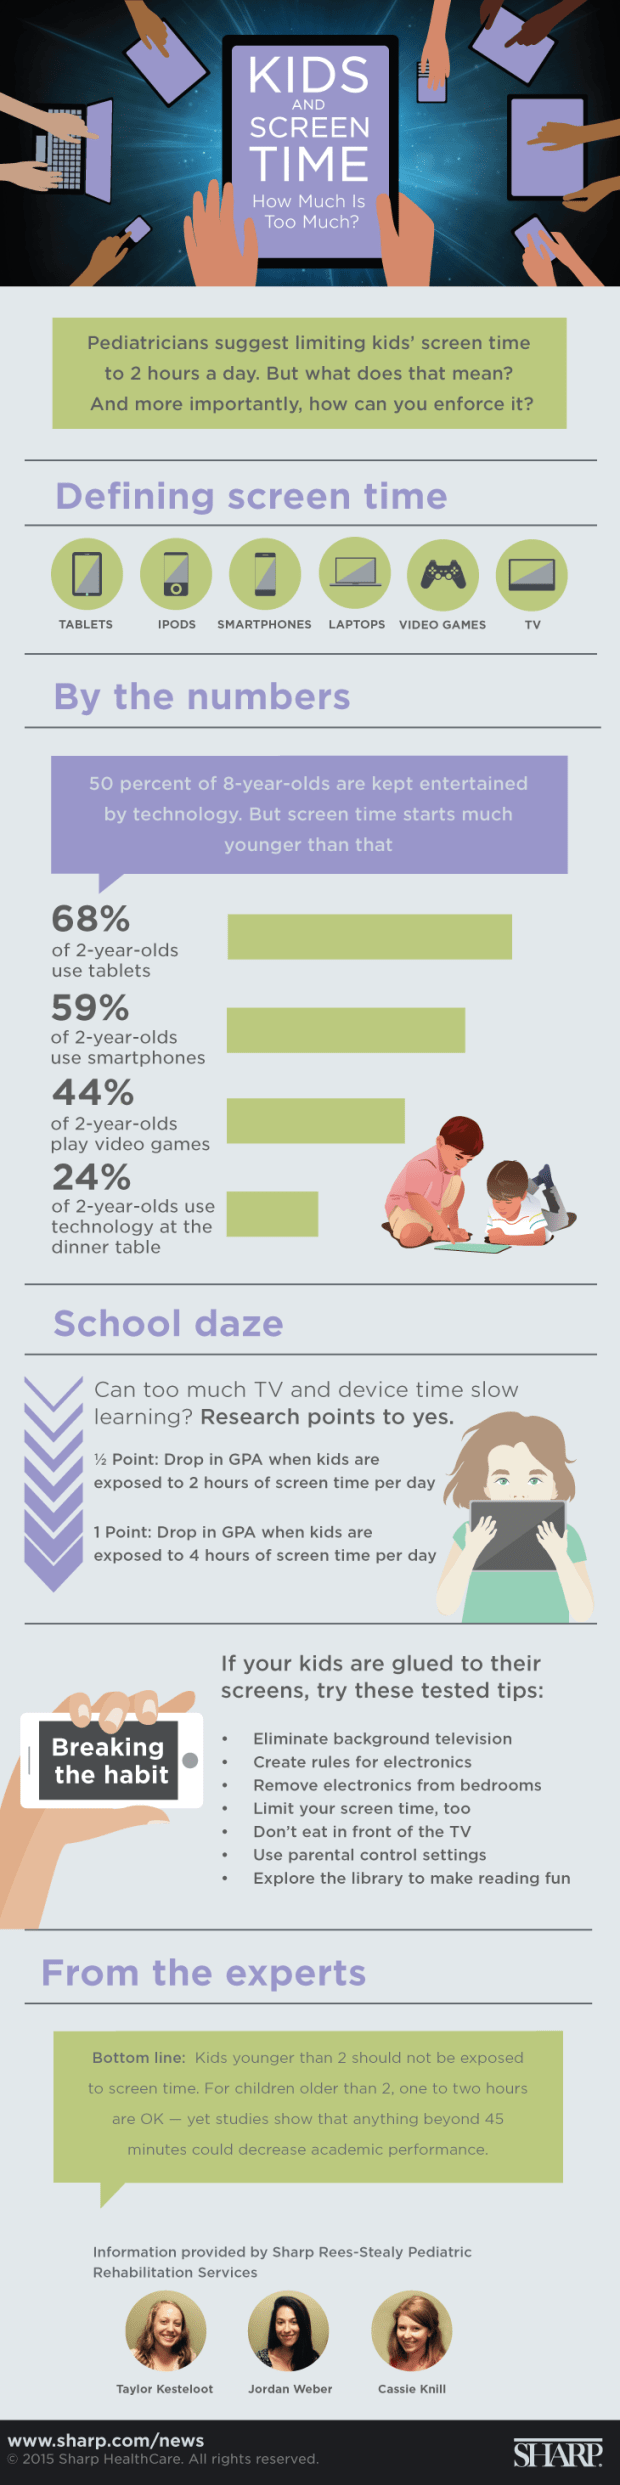 Kids Screen Time Infographic